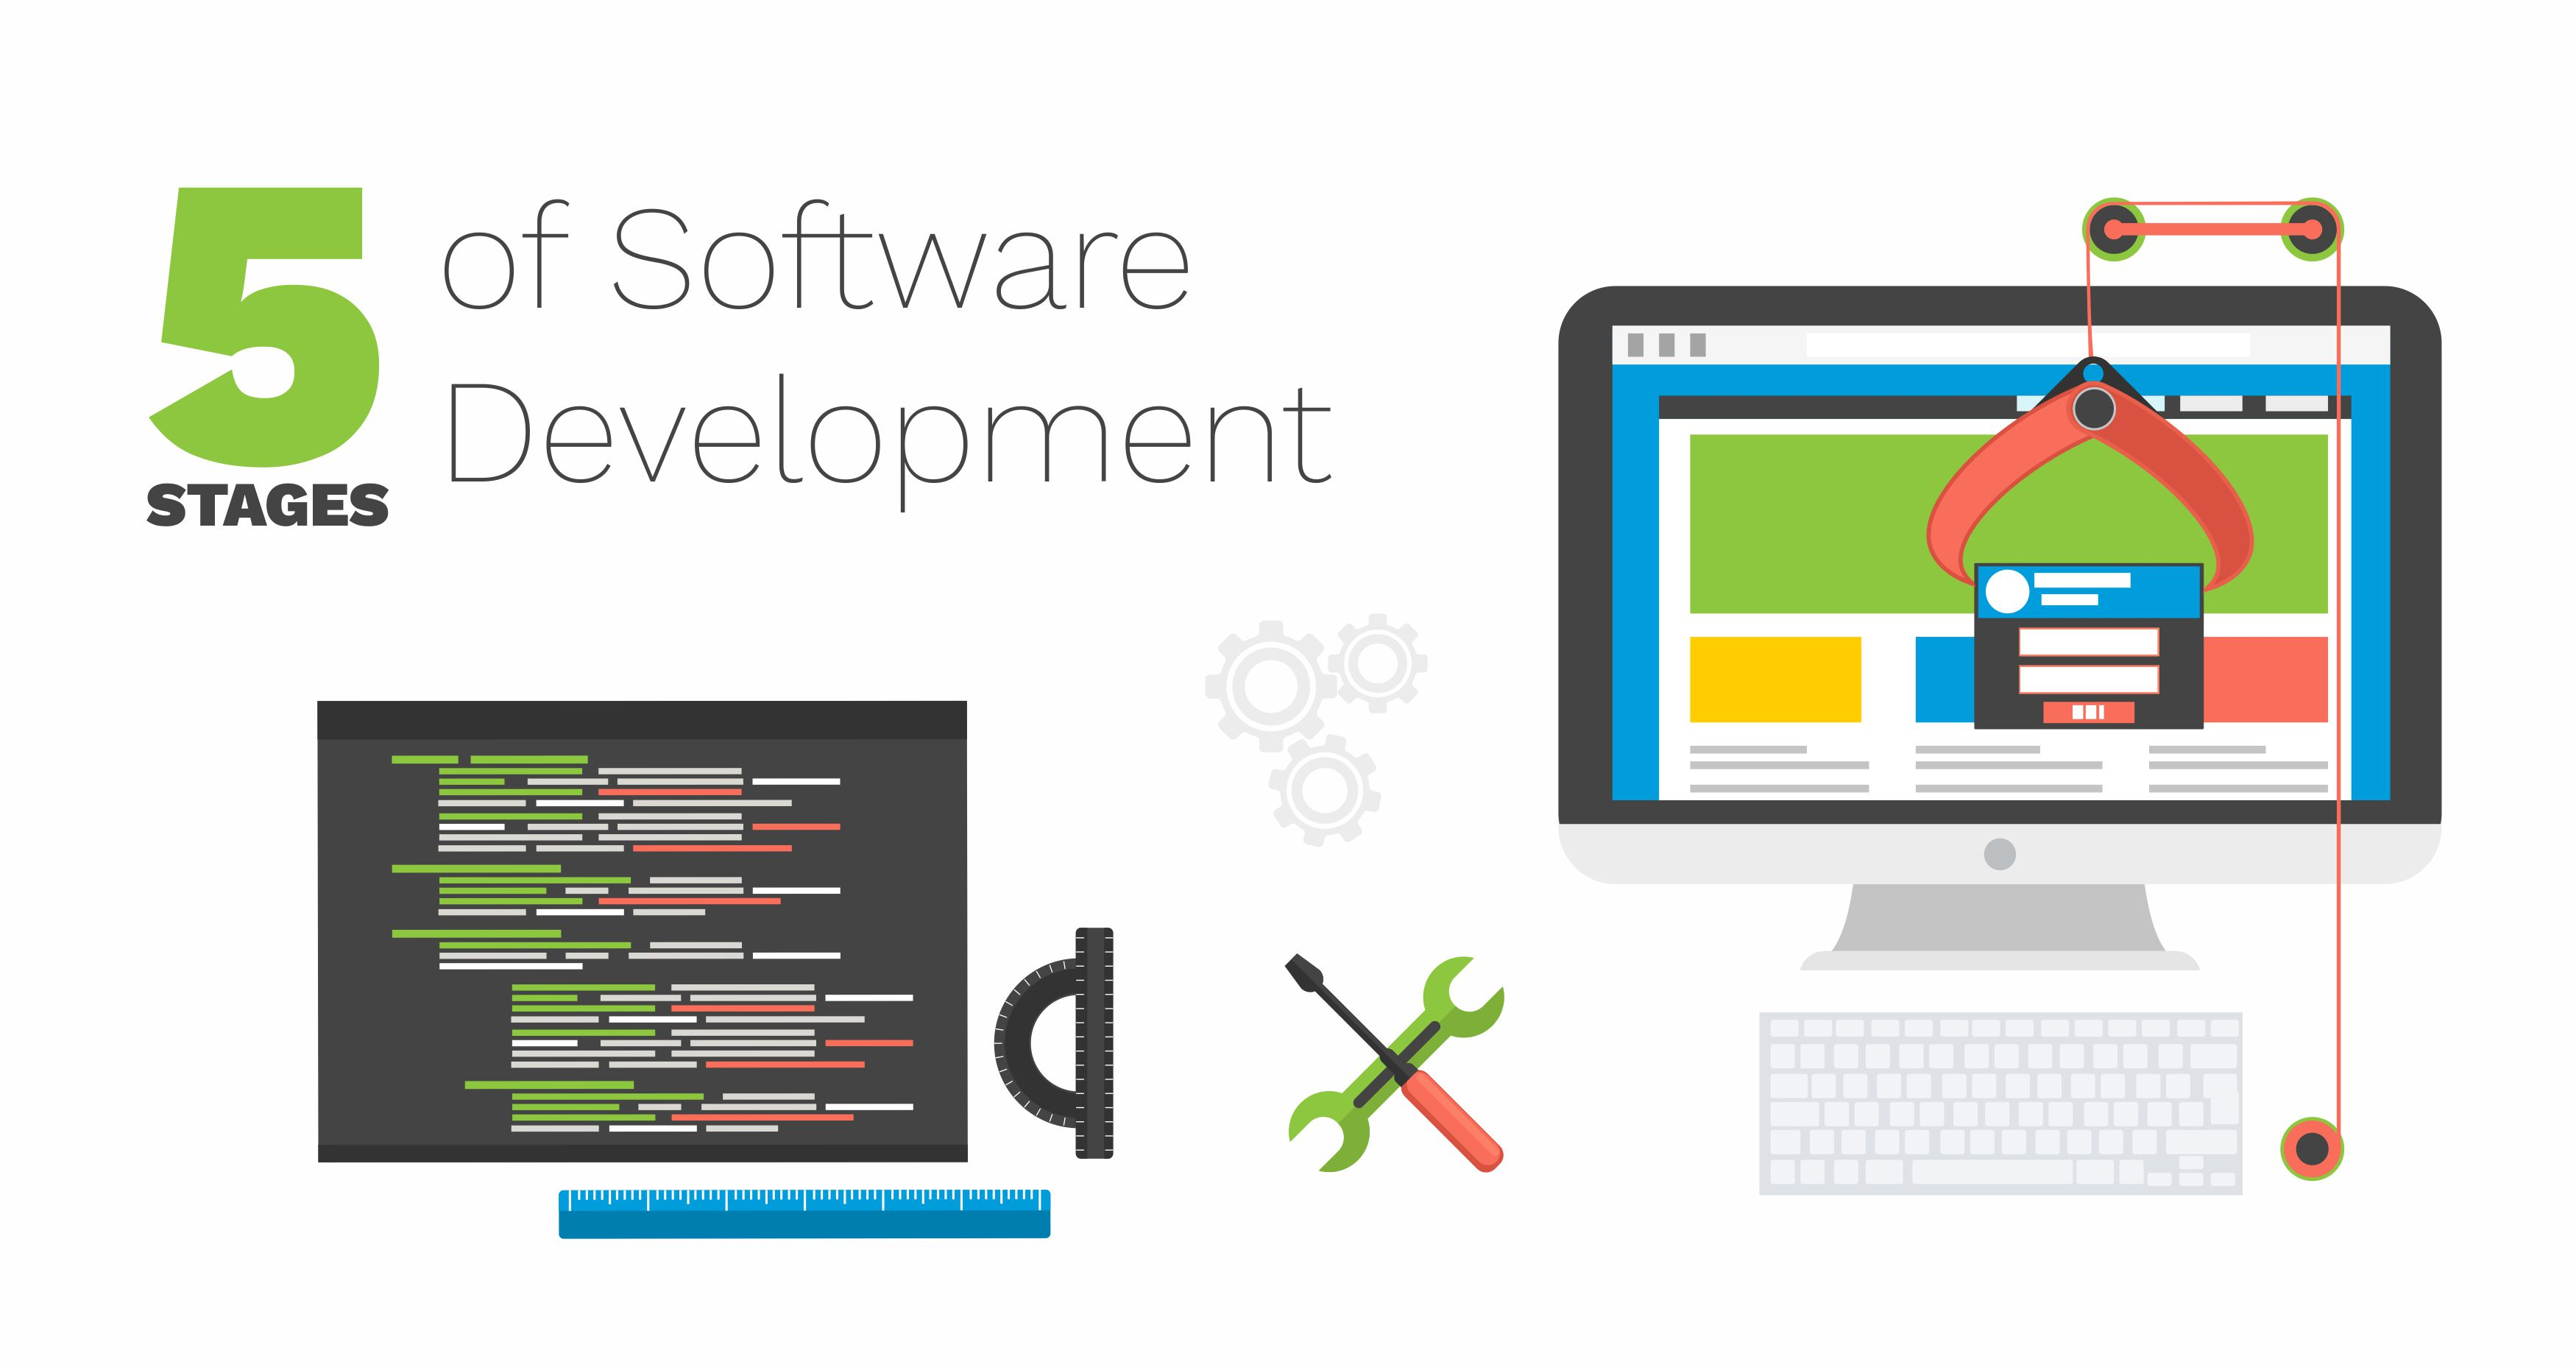 The 5 Stages of Software Development